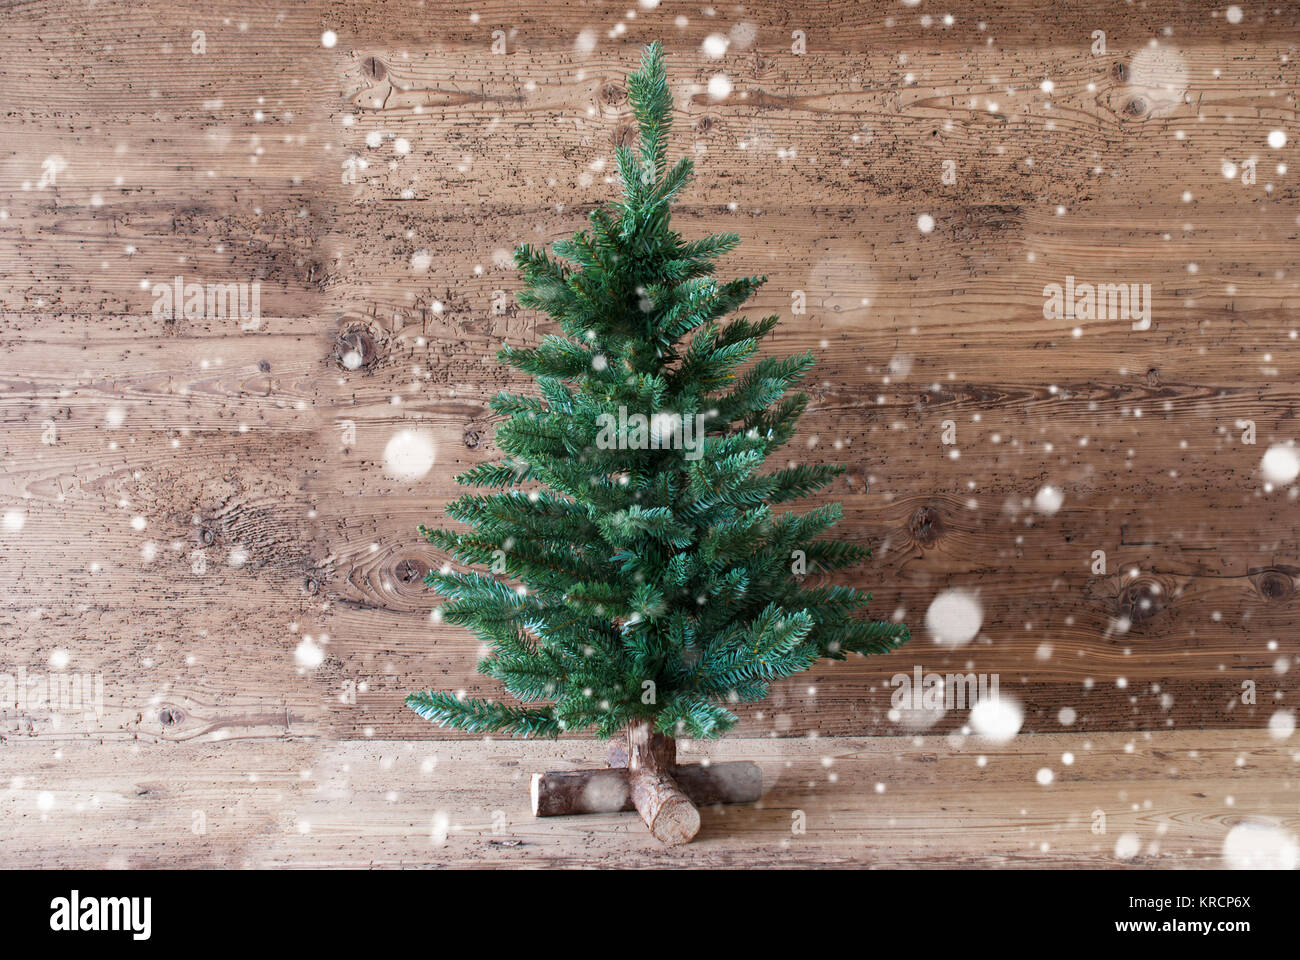 christmas tree,snowflakes,aged wooden background,copy space - Stock Image